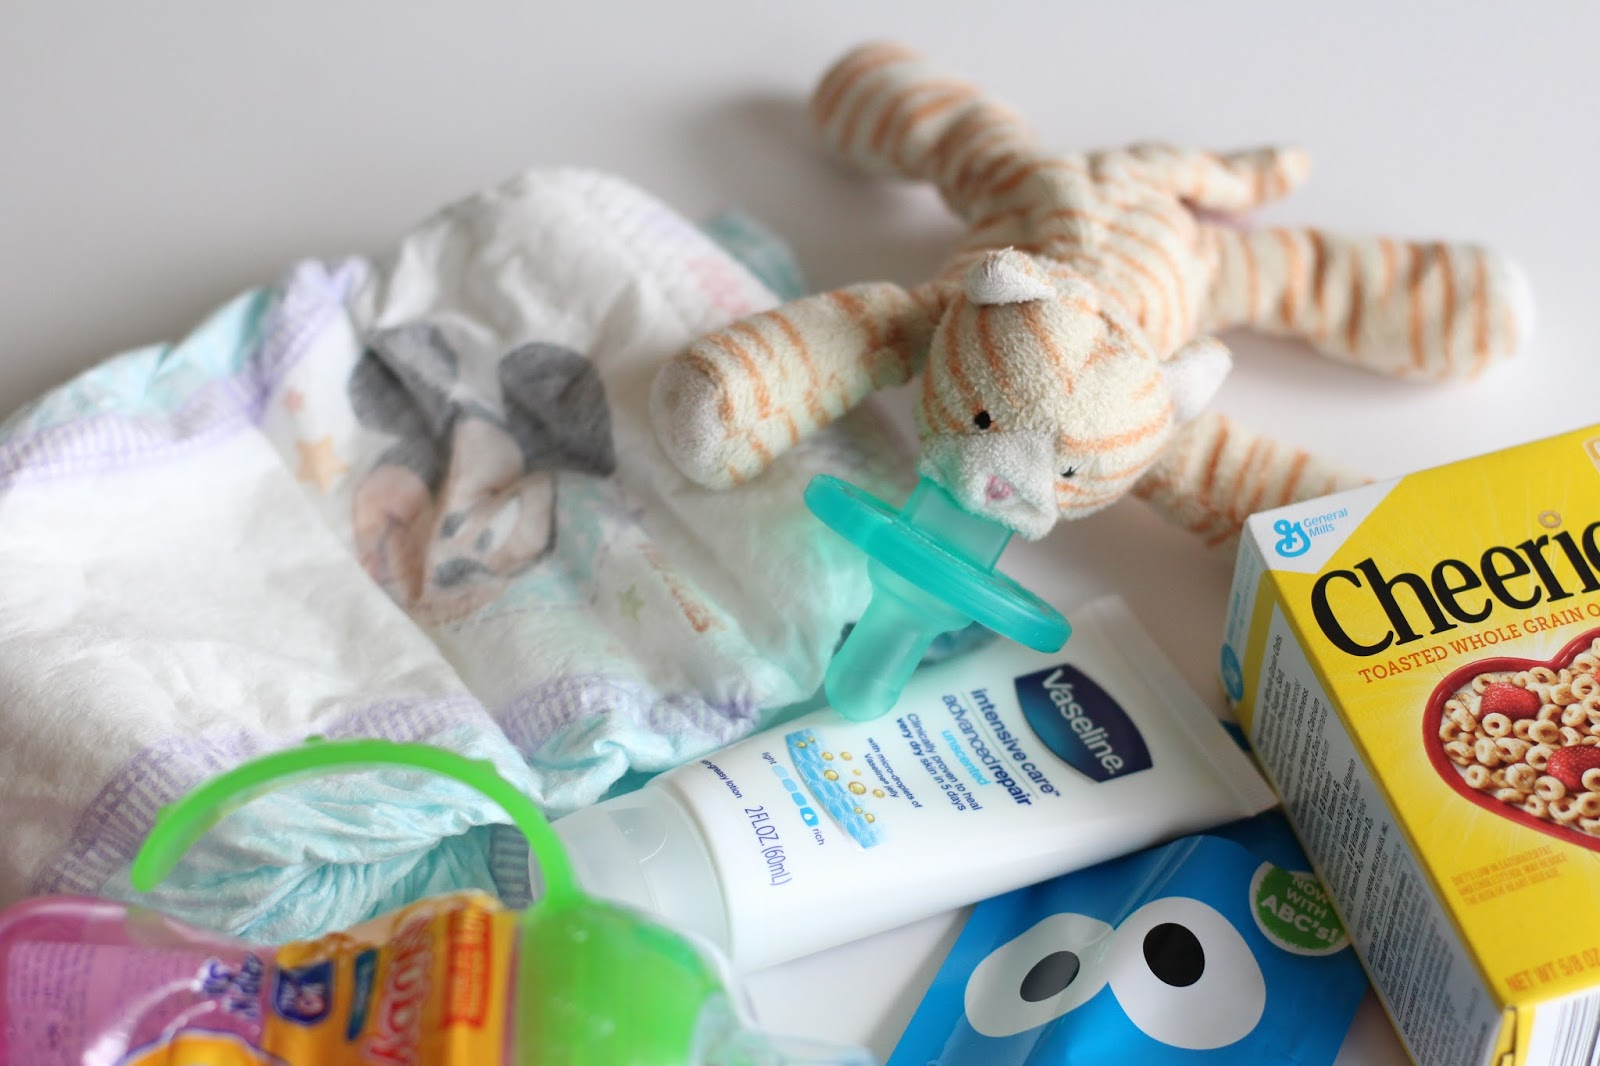 Baby Products I couldn't live without